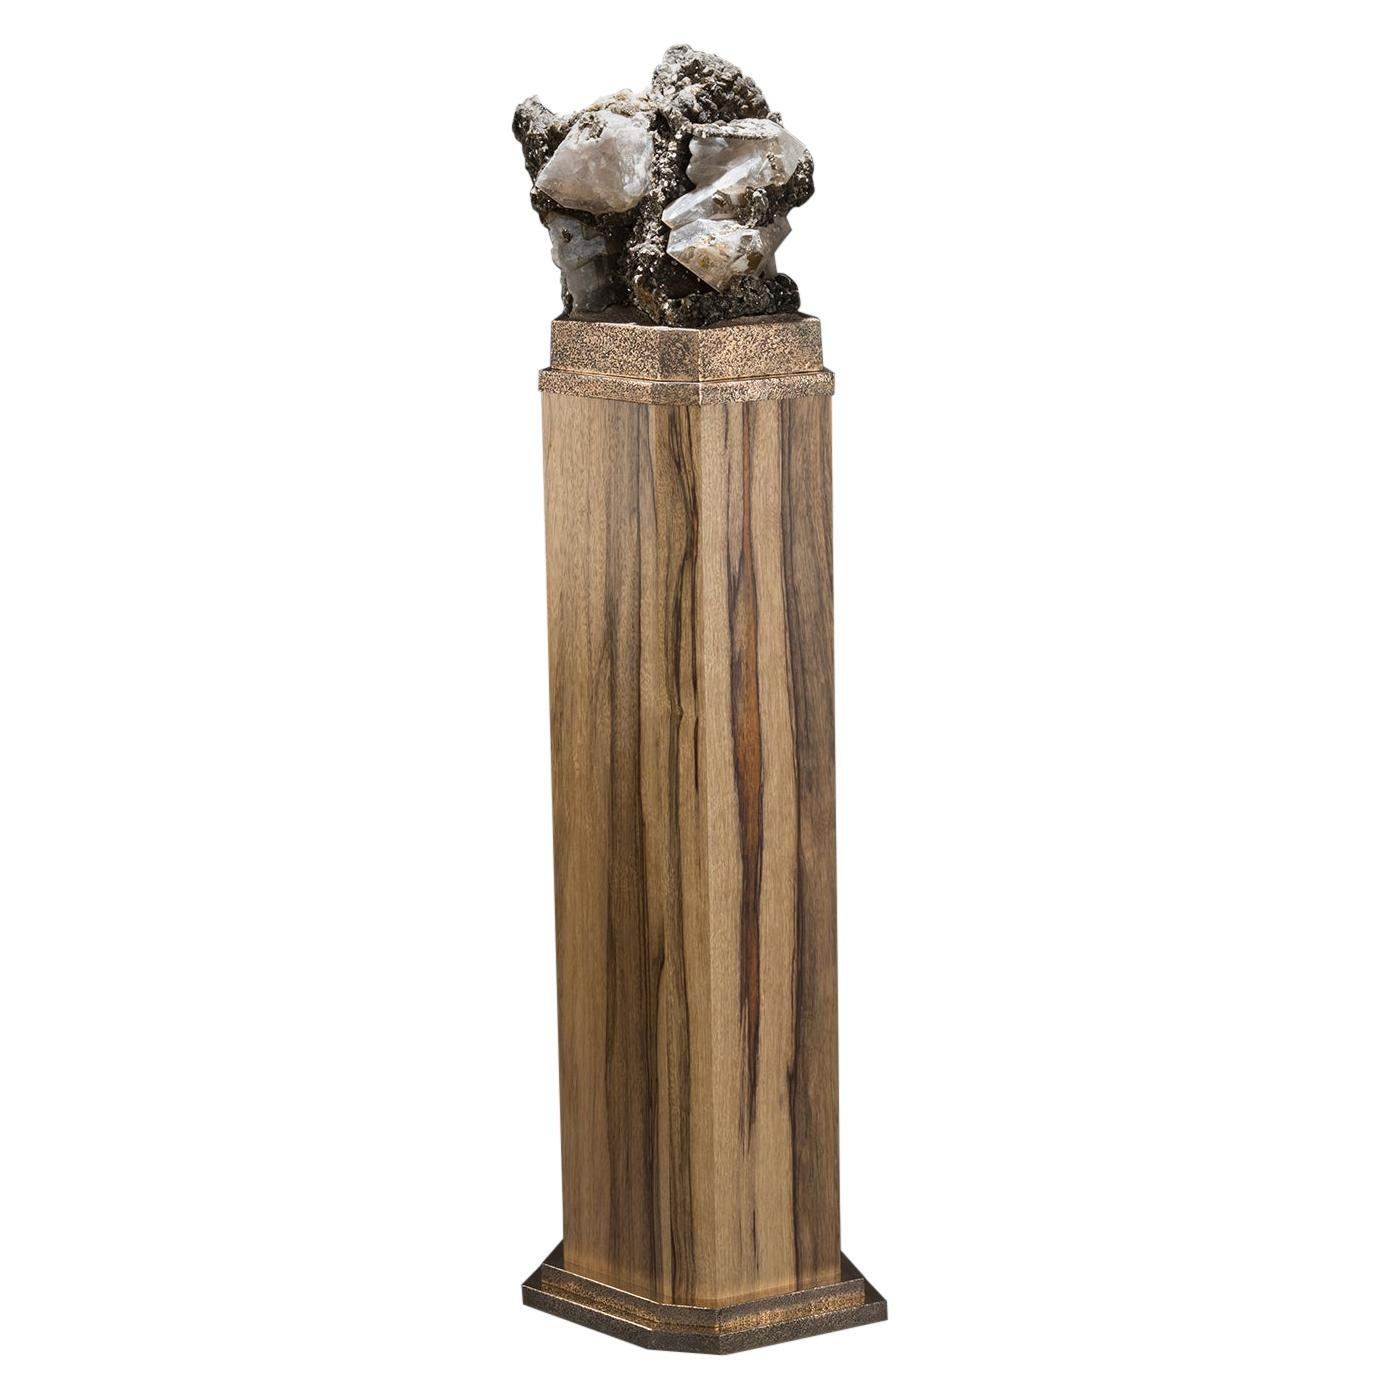 Studio Greytak 'Mica on Black Limba with Bronze' Mica & Black Limba Pedestal Art